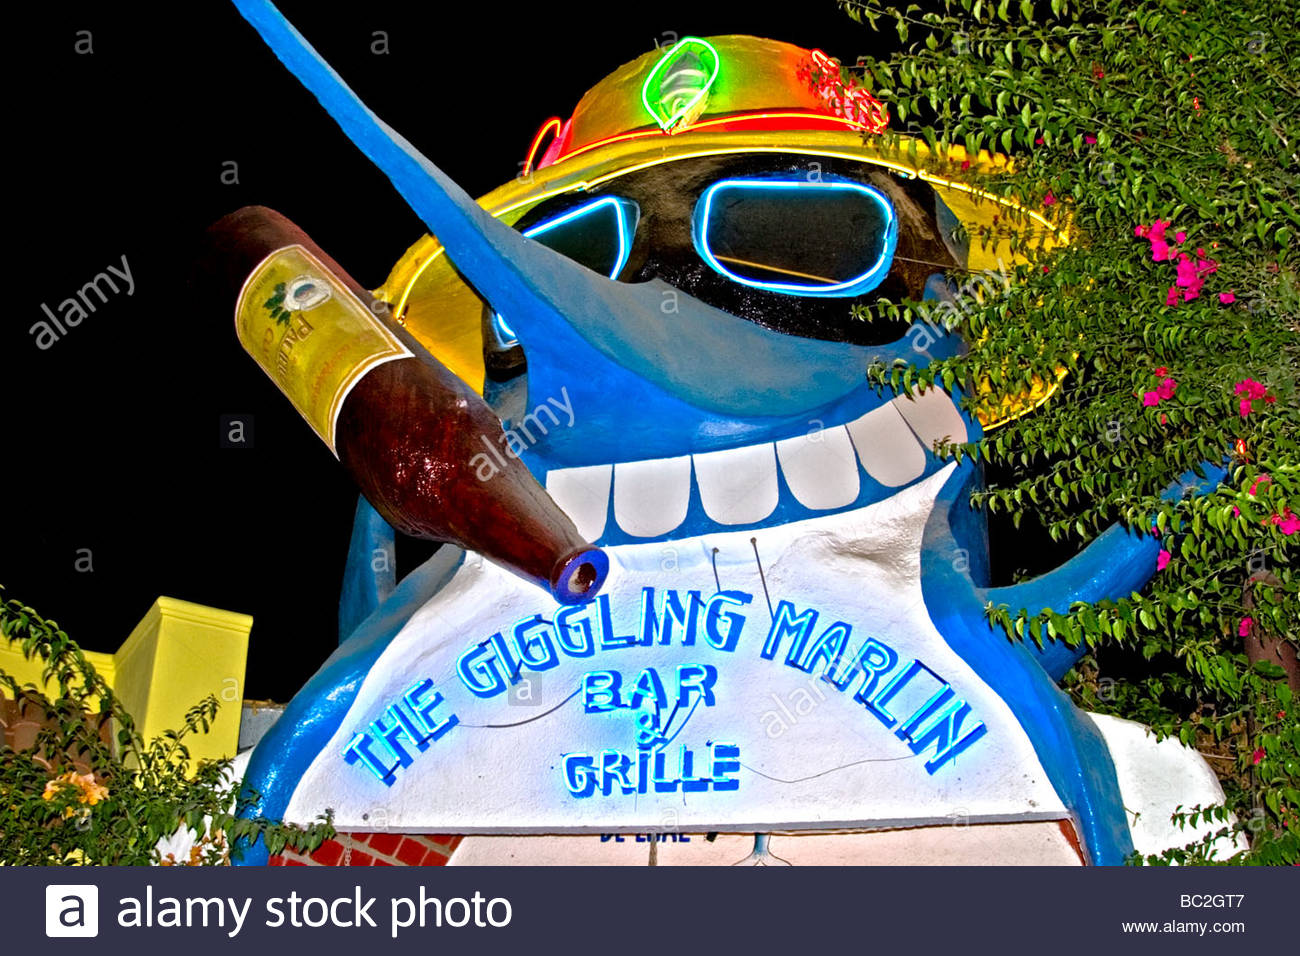 Goofy neon sign for the Giggling Marlin Bar and Grille in Cabo San Lucas Mexico. Editorial use only. - Stock Image